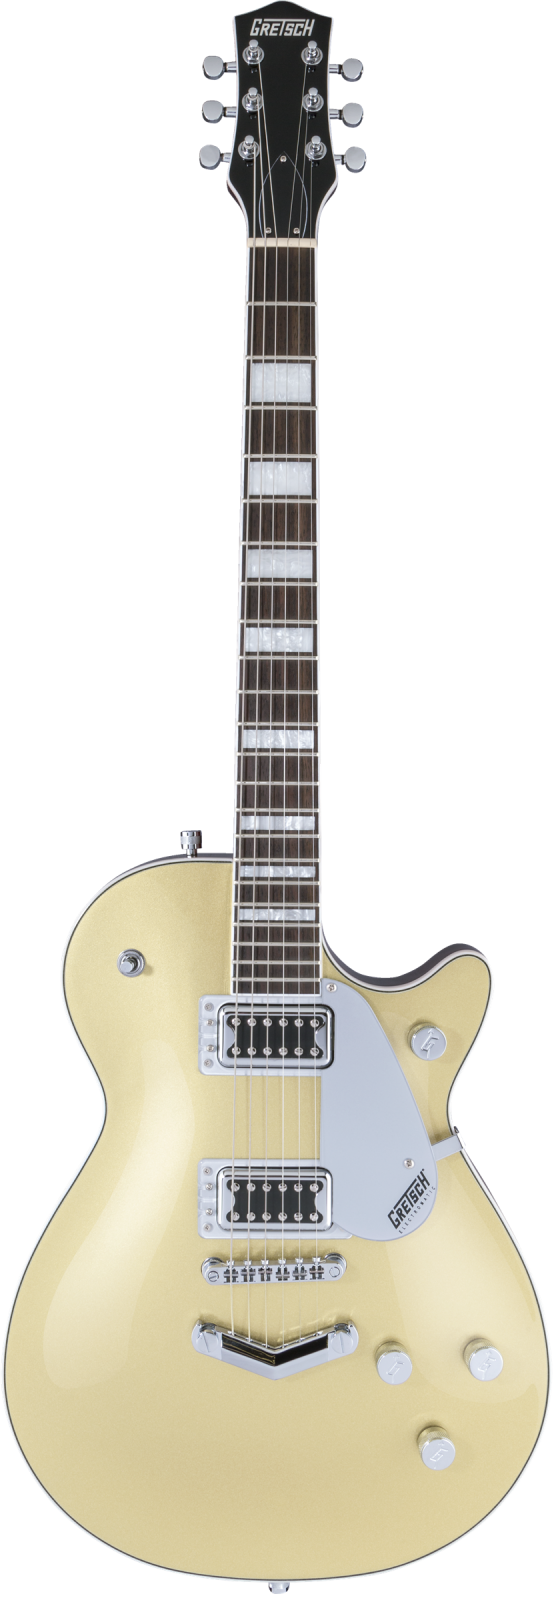 Gretsch G5220 Electromatic Jet - Casino Gold